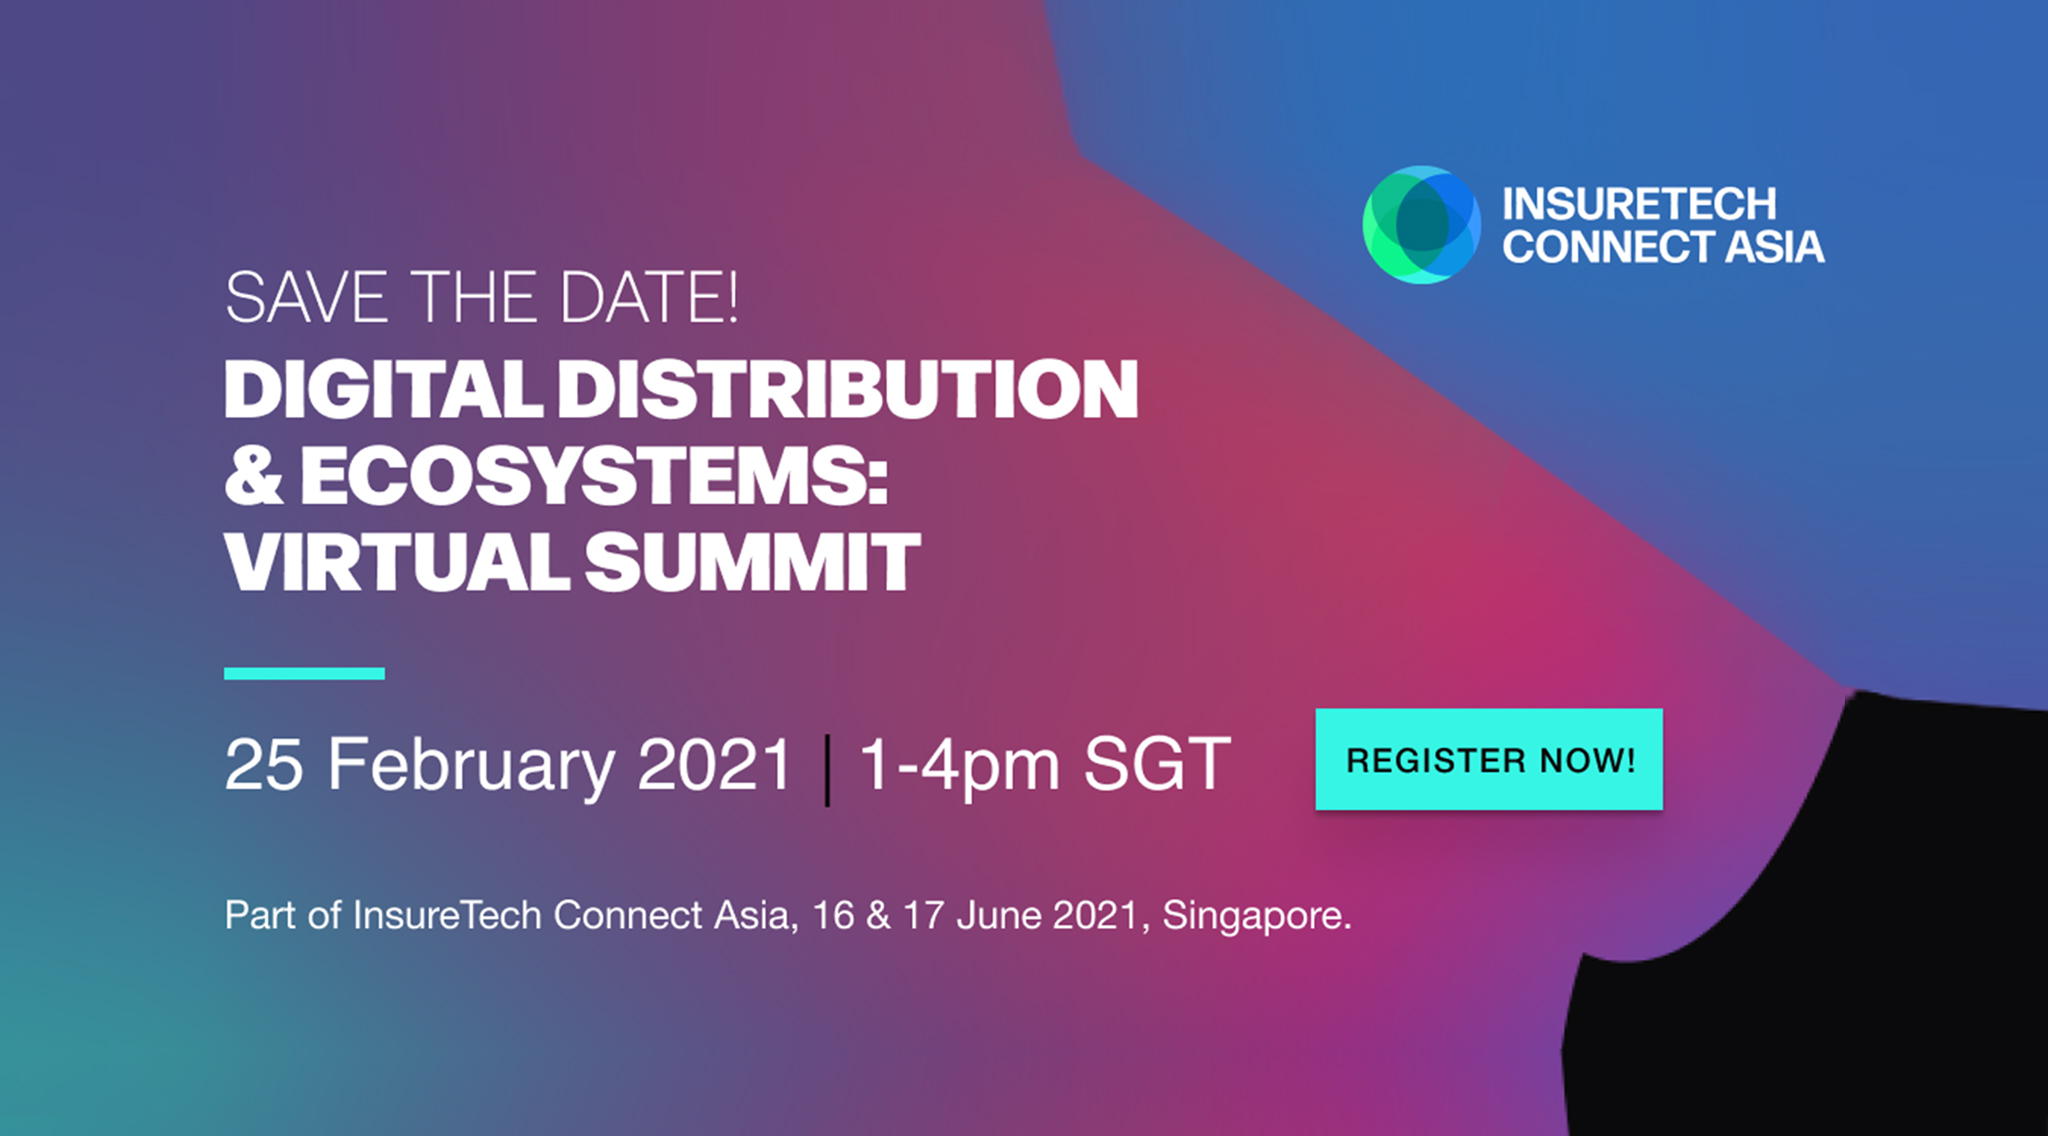 InsureTech Connect Asia Launches Its Digital Distribution & Ecosystems Summit-